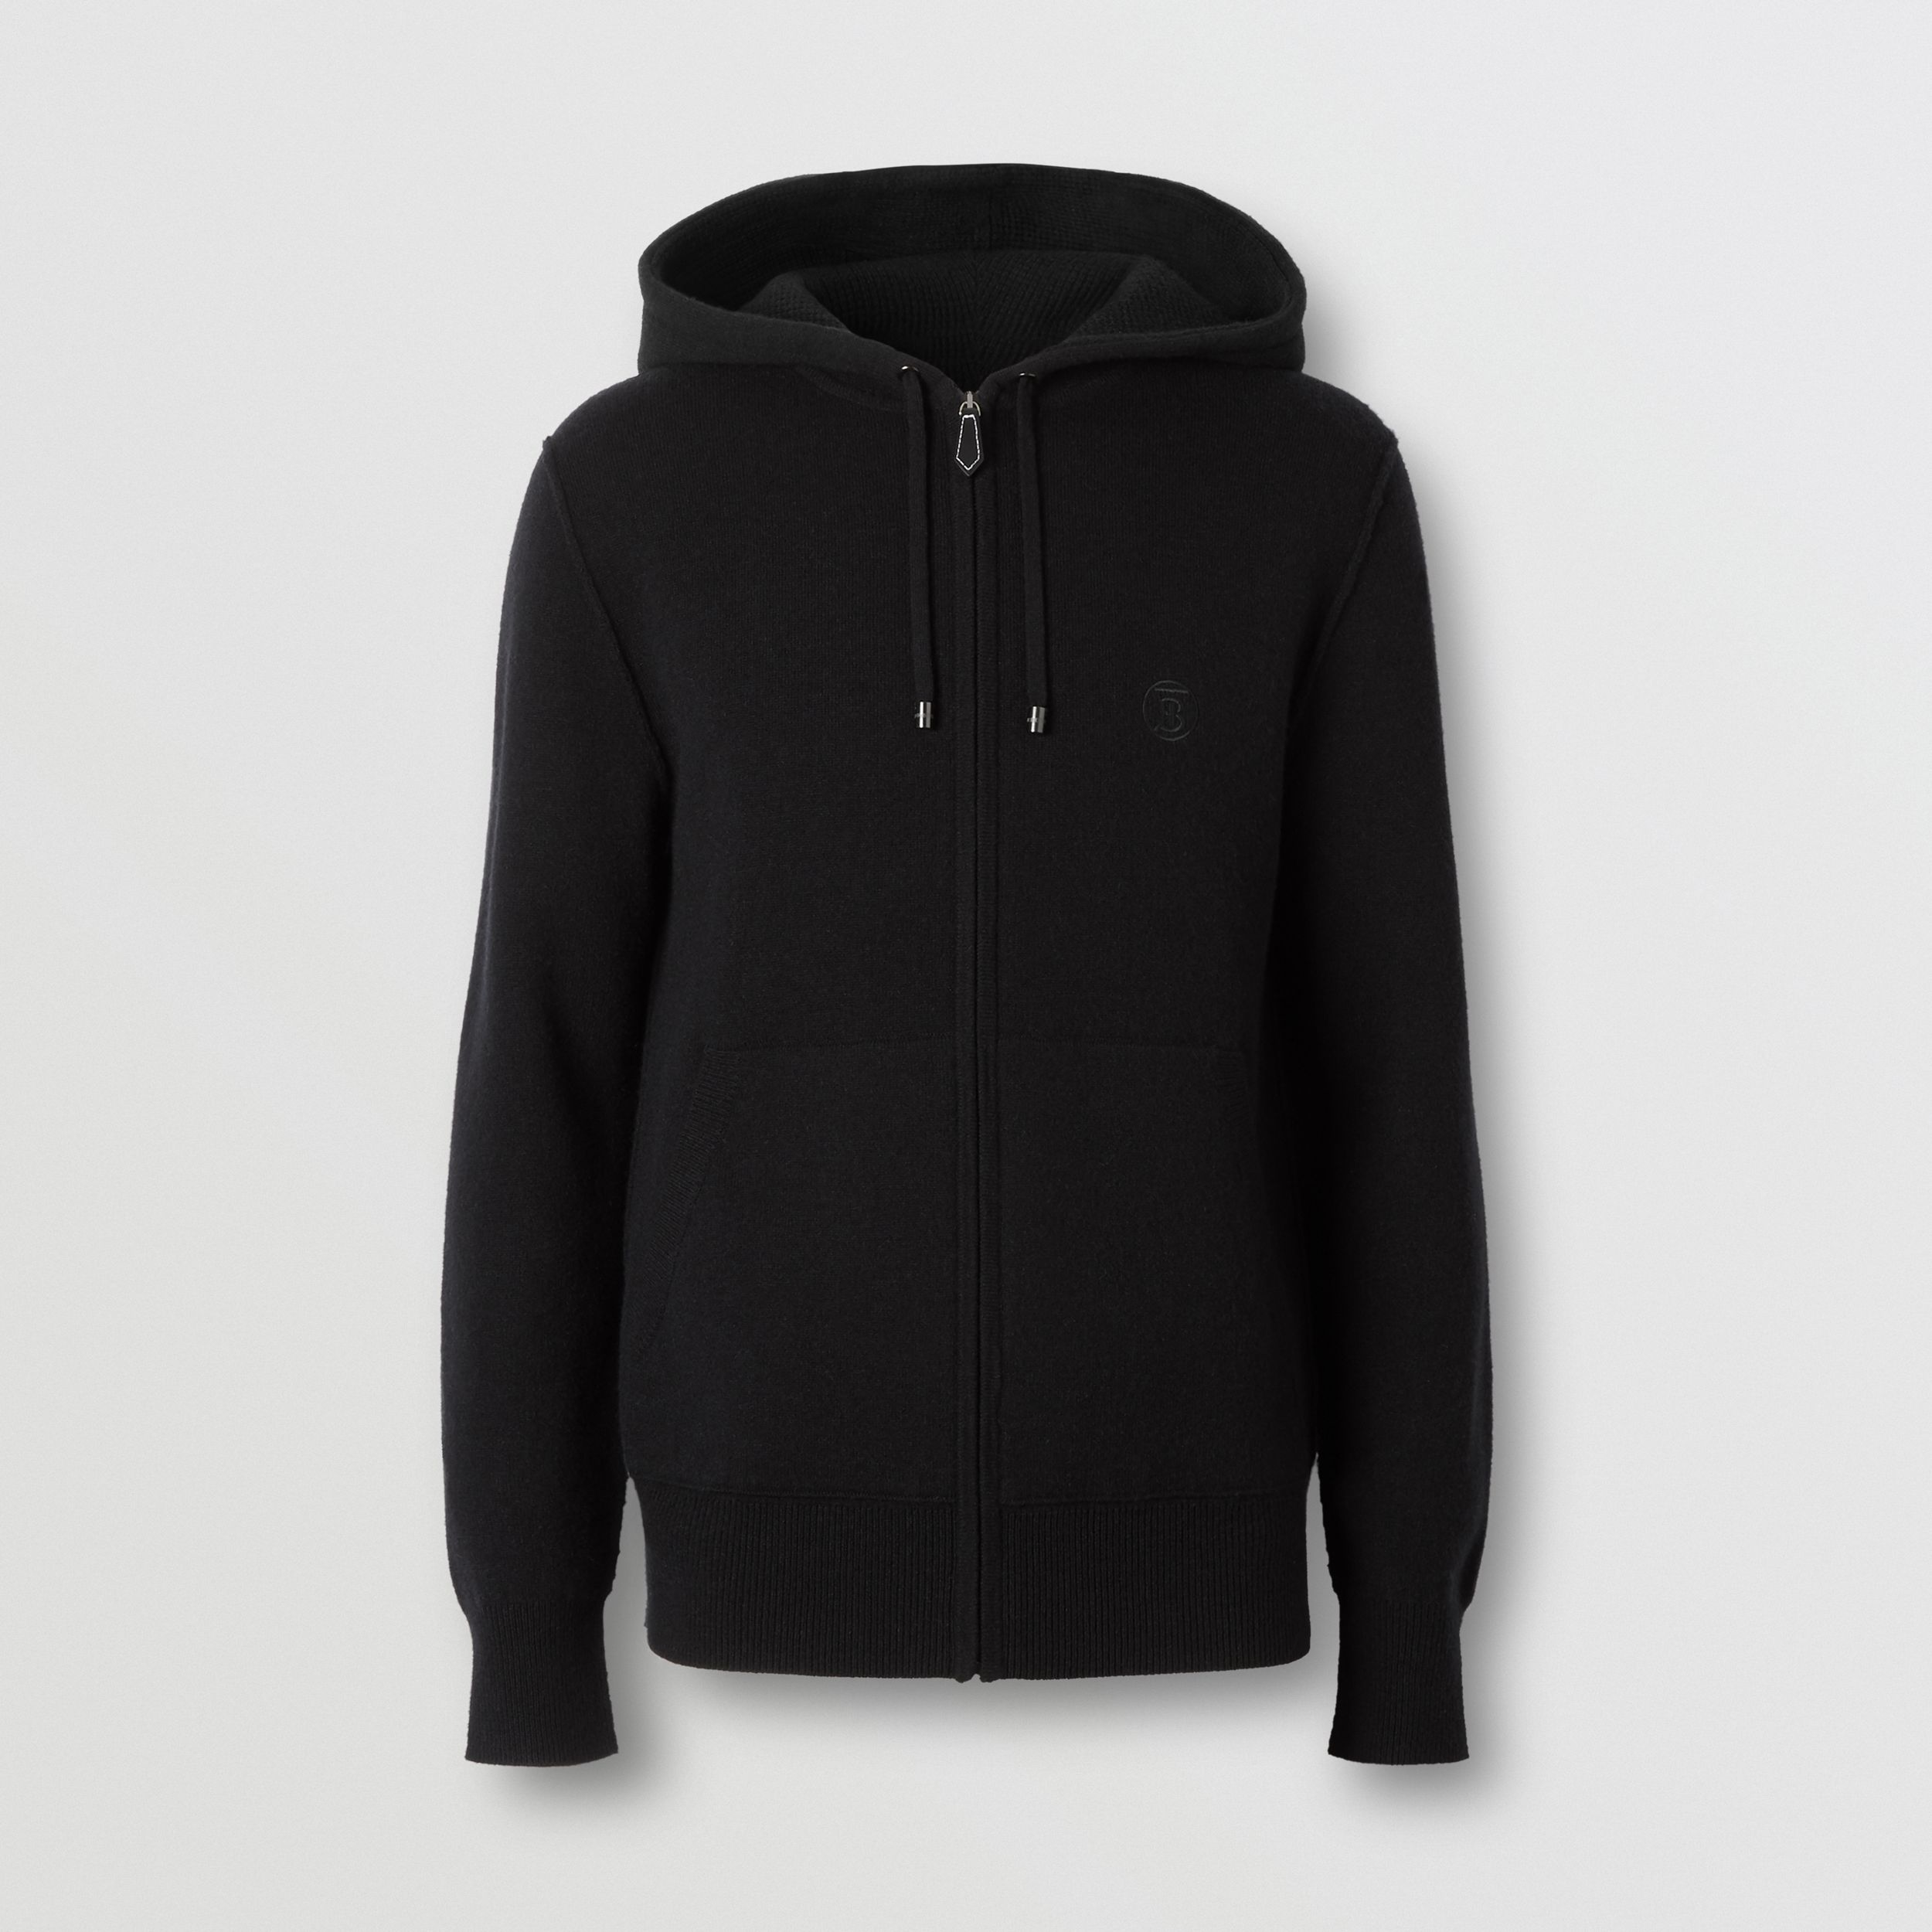 Monogram Motif Cashmere Blend Hooded Top in Black - Men | Burberry - 4